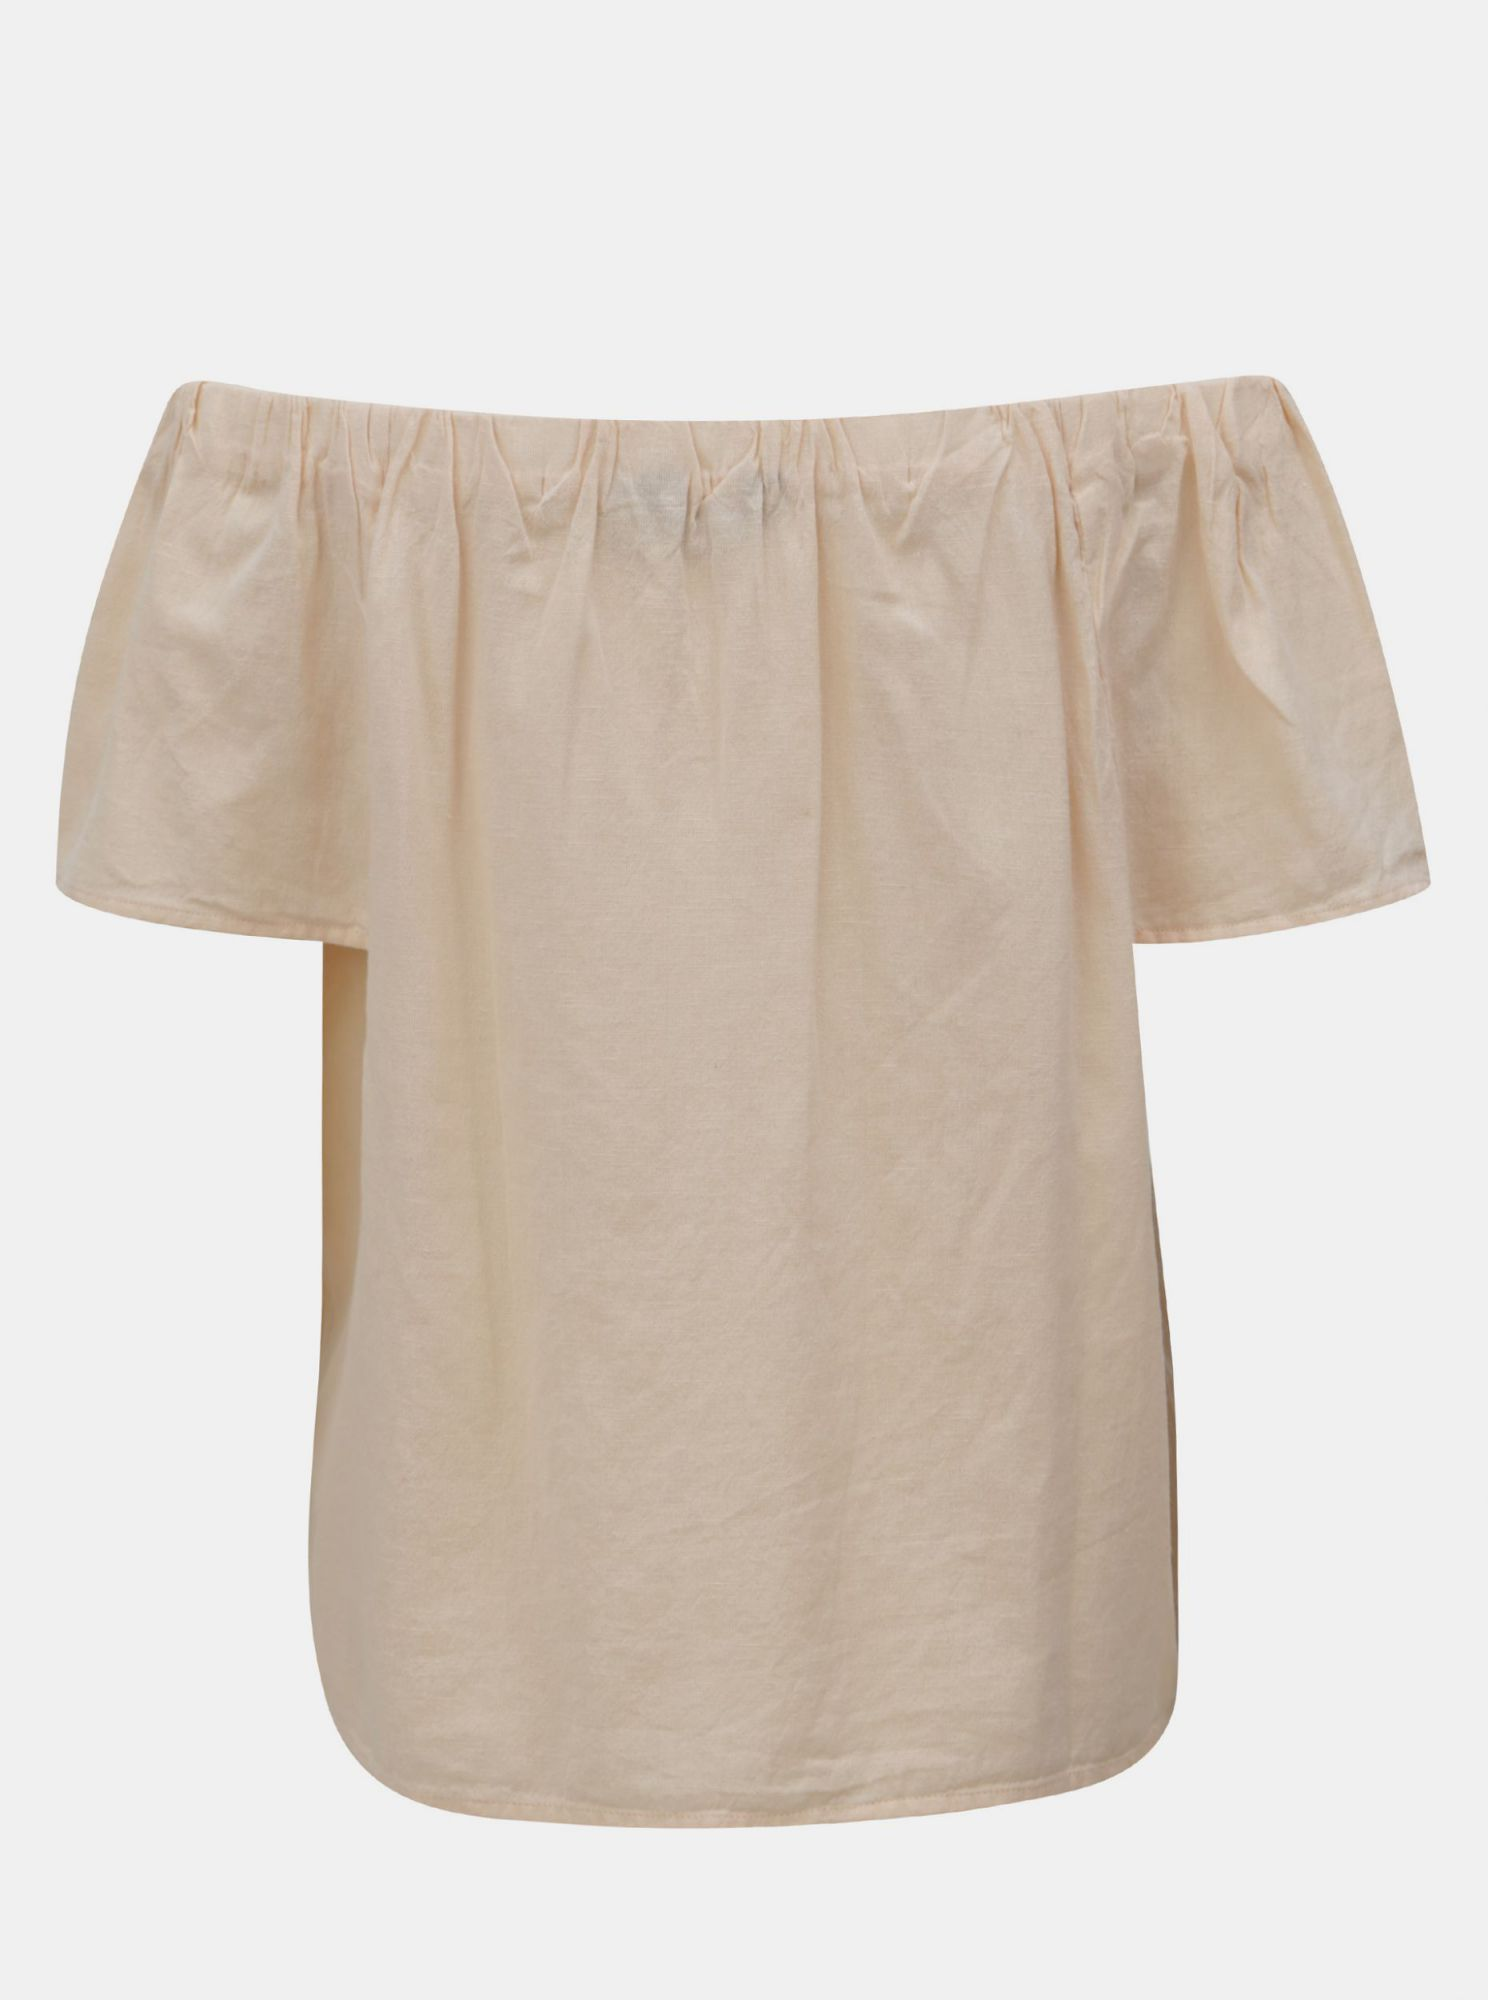 Apricot blouse with floral embroidery and exposed shoulders Dorothy Perkins